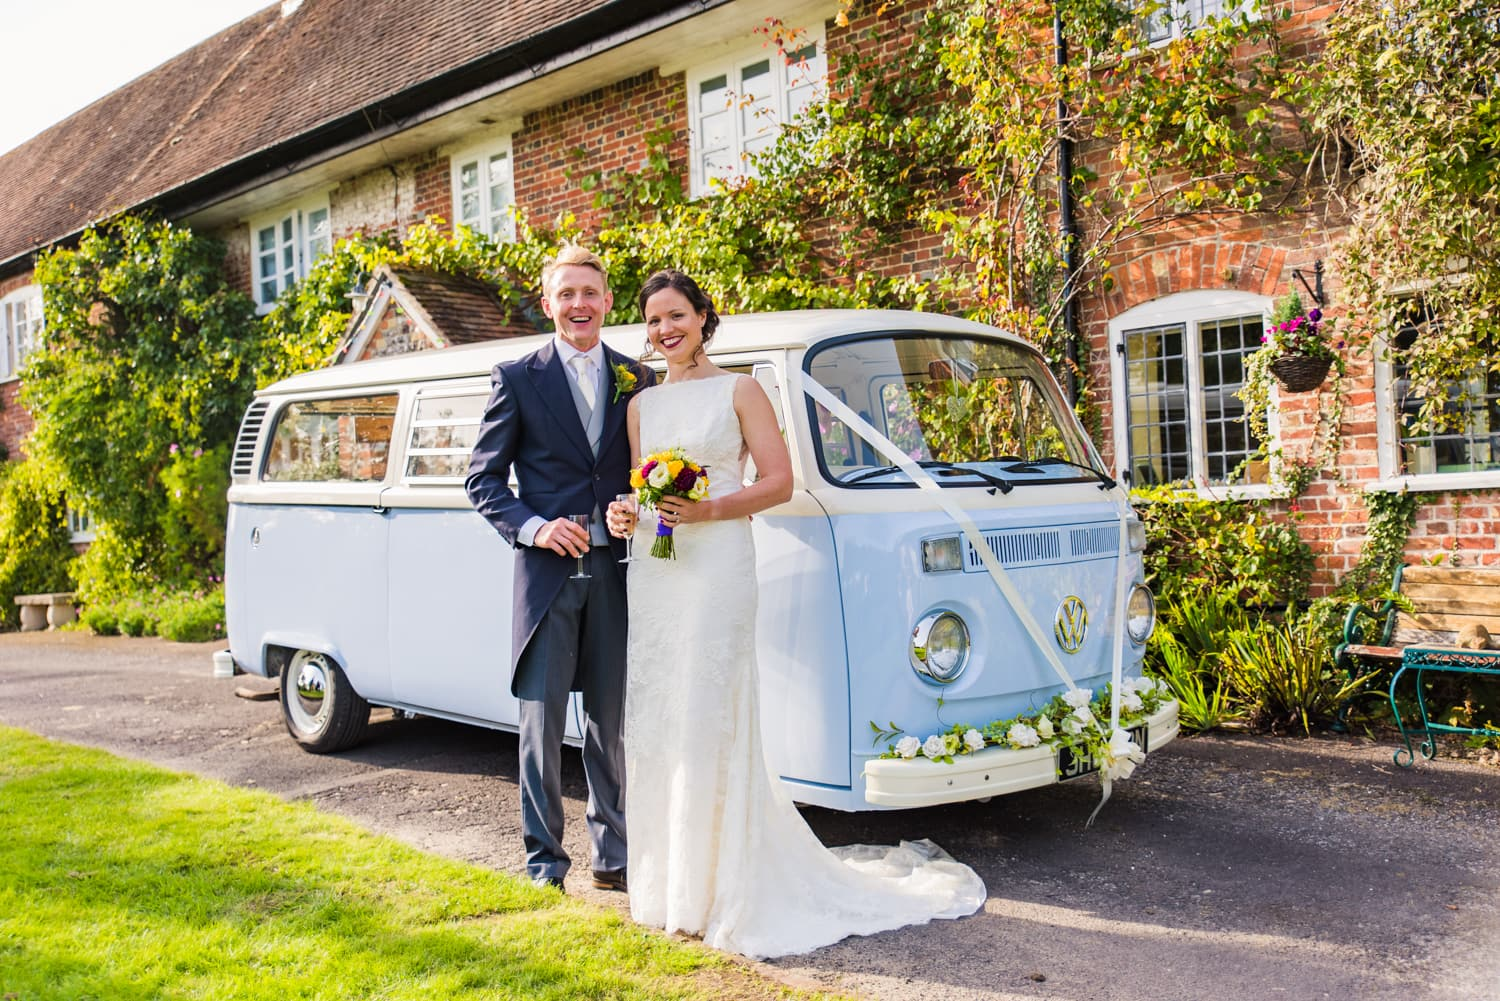 065-bride-and-groom-with-campervan.jpg